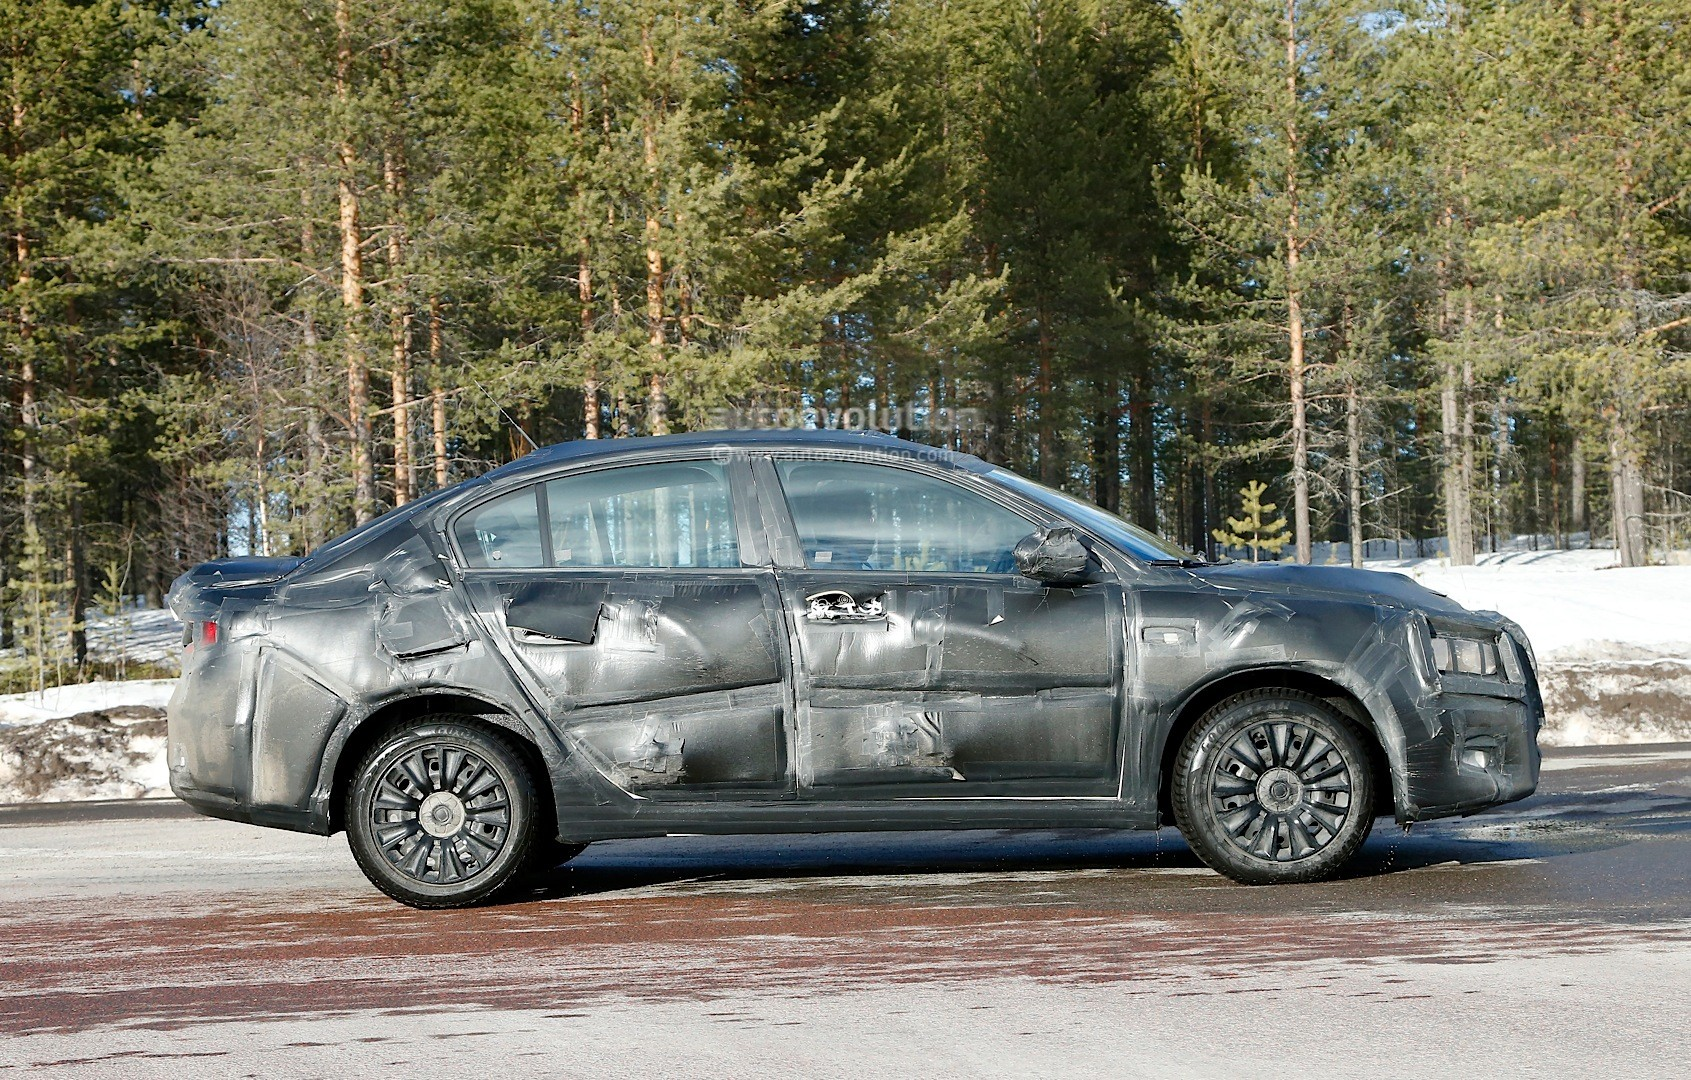 2015 - [Fiat] Tipo sedan Spyshots-all-new-2016-fiat-linea-compact-sedan-spotted-for-the-first-time_5